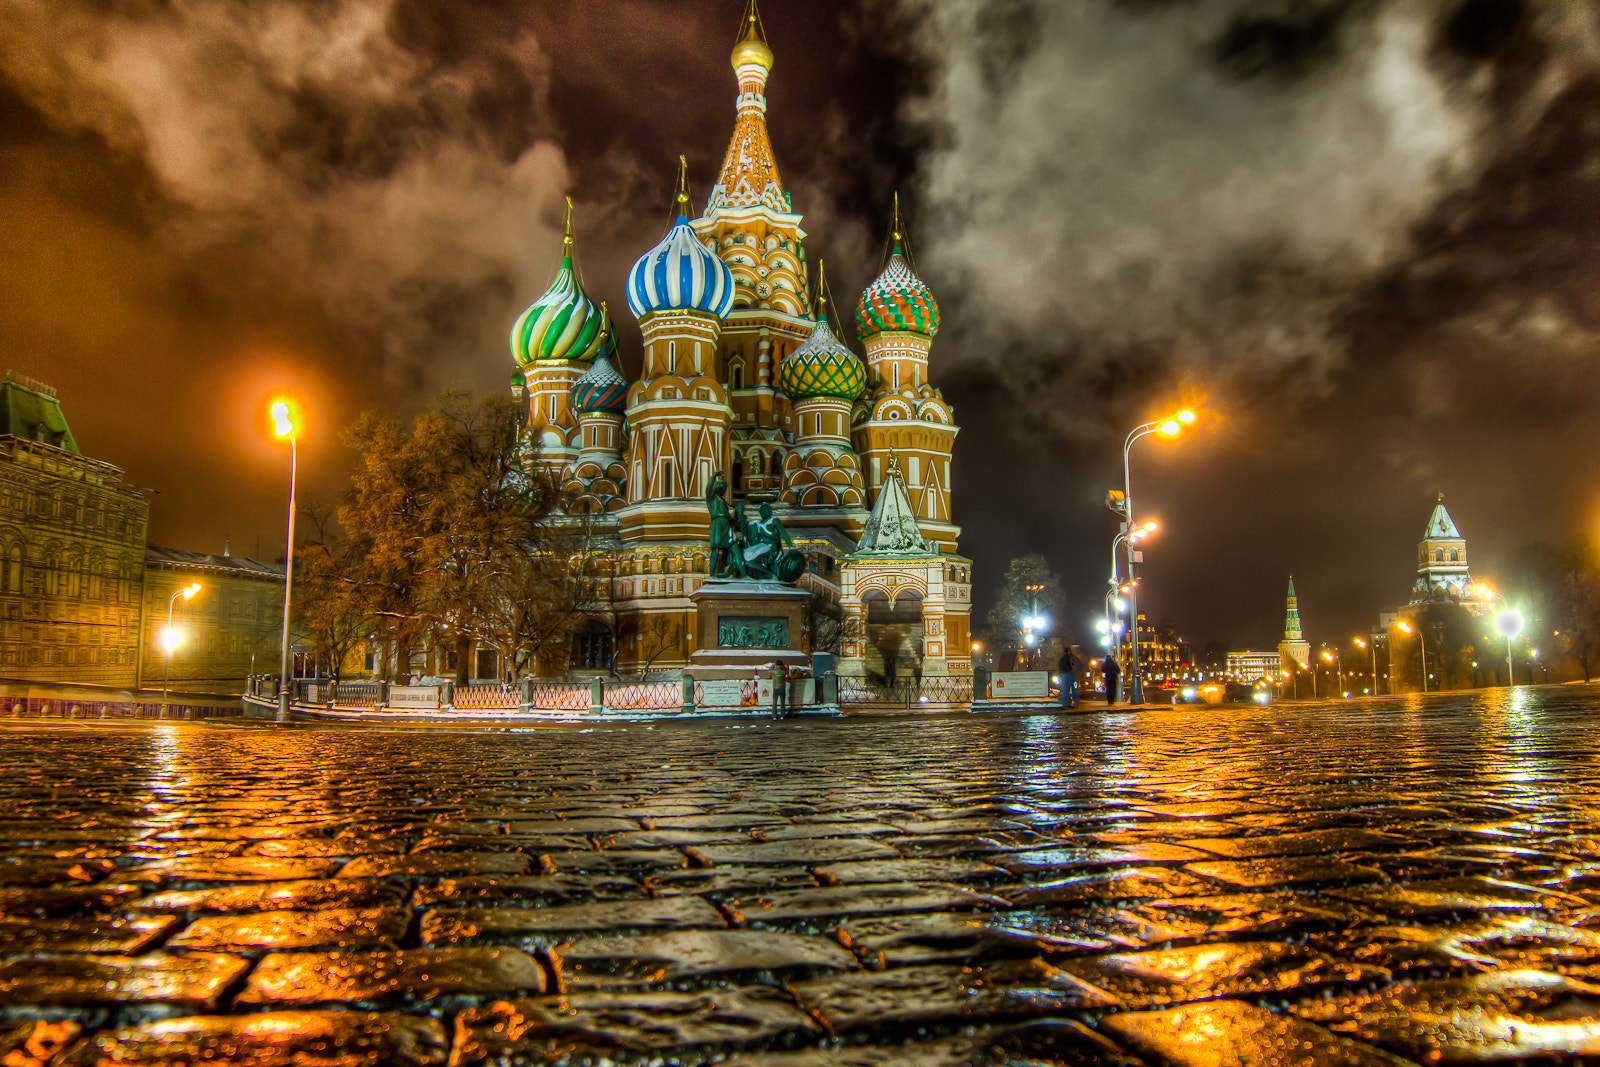 Photograph The Saint Basil's Cathedral by Maxim Bespalov on 500px